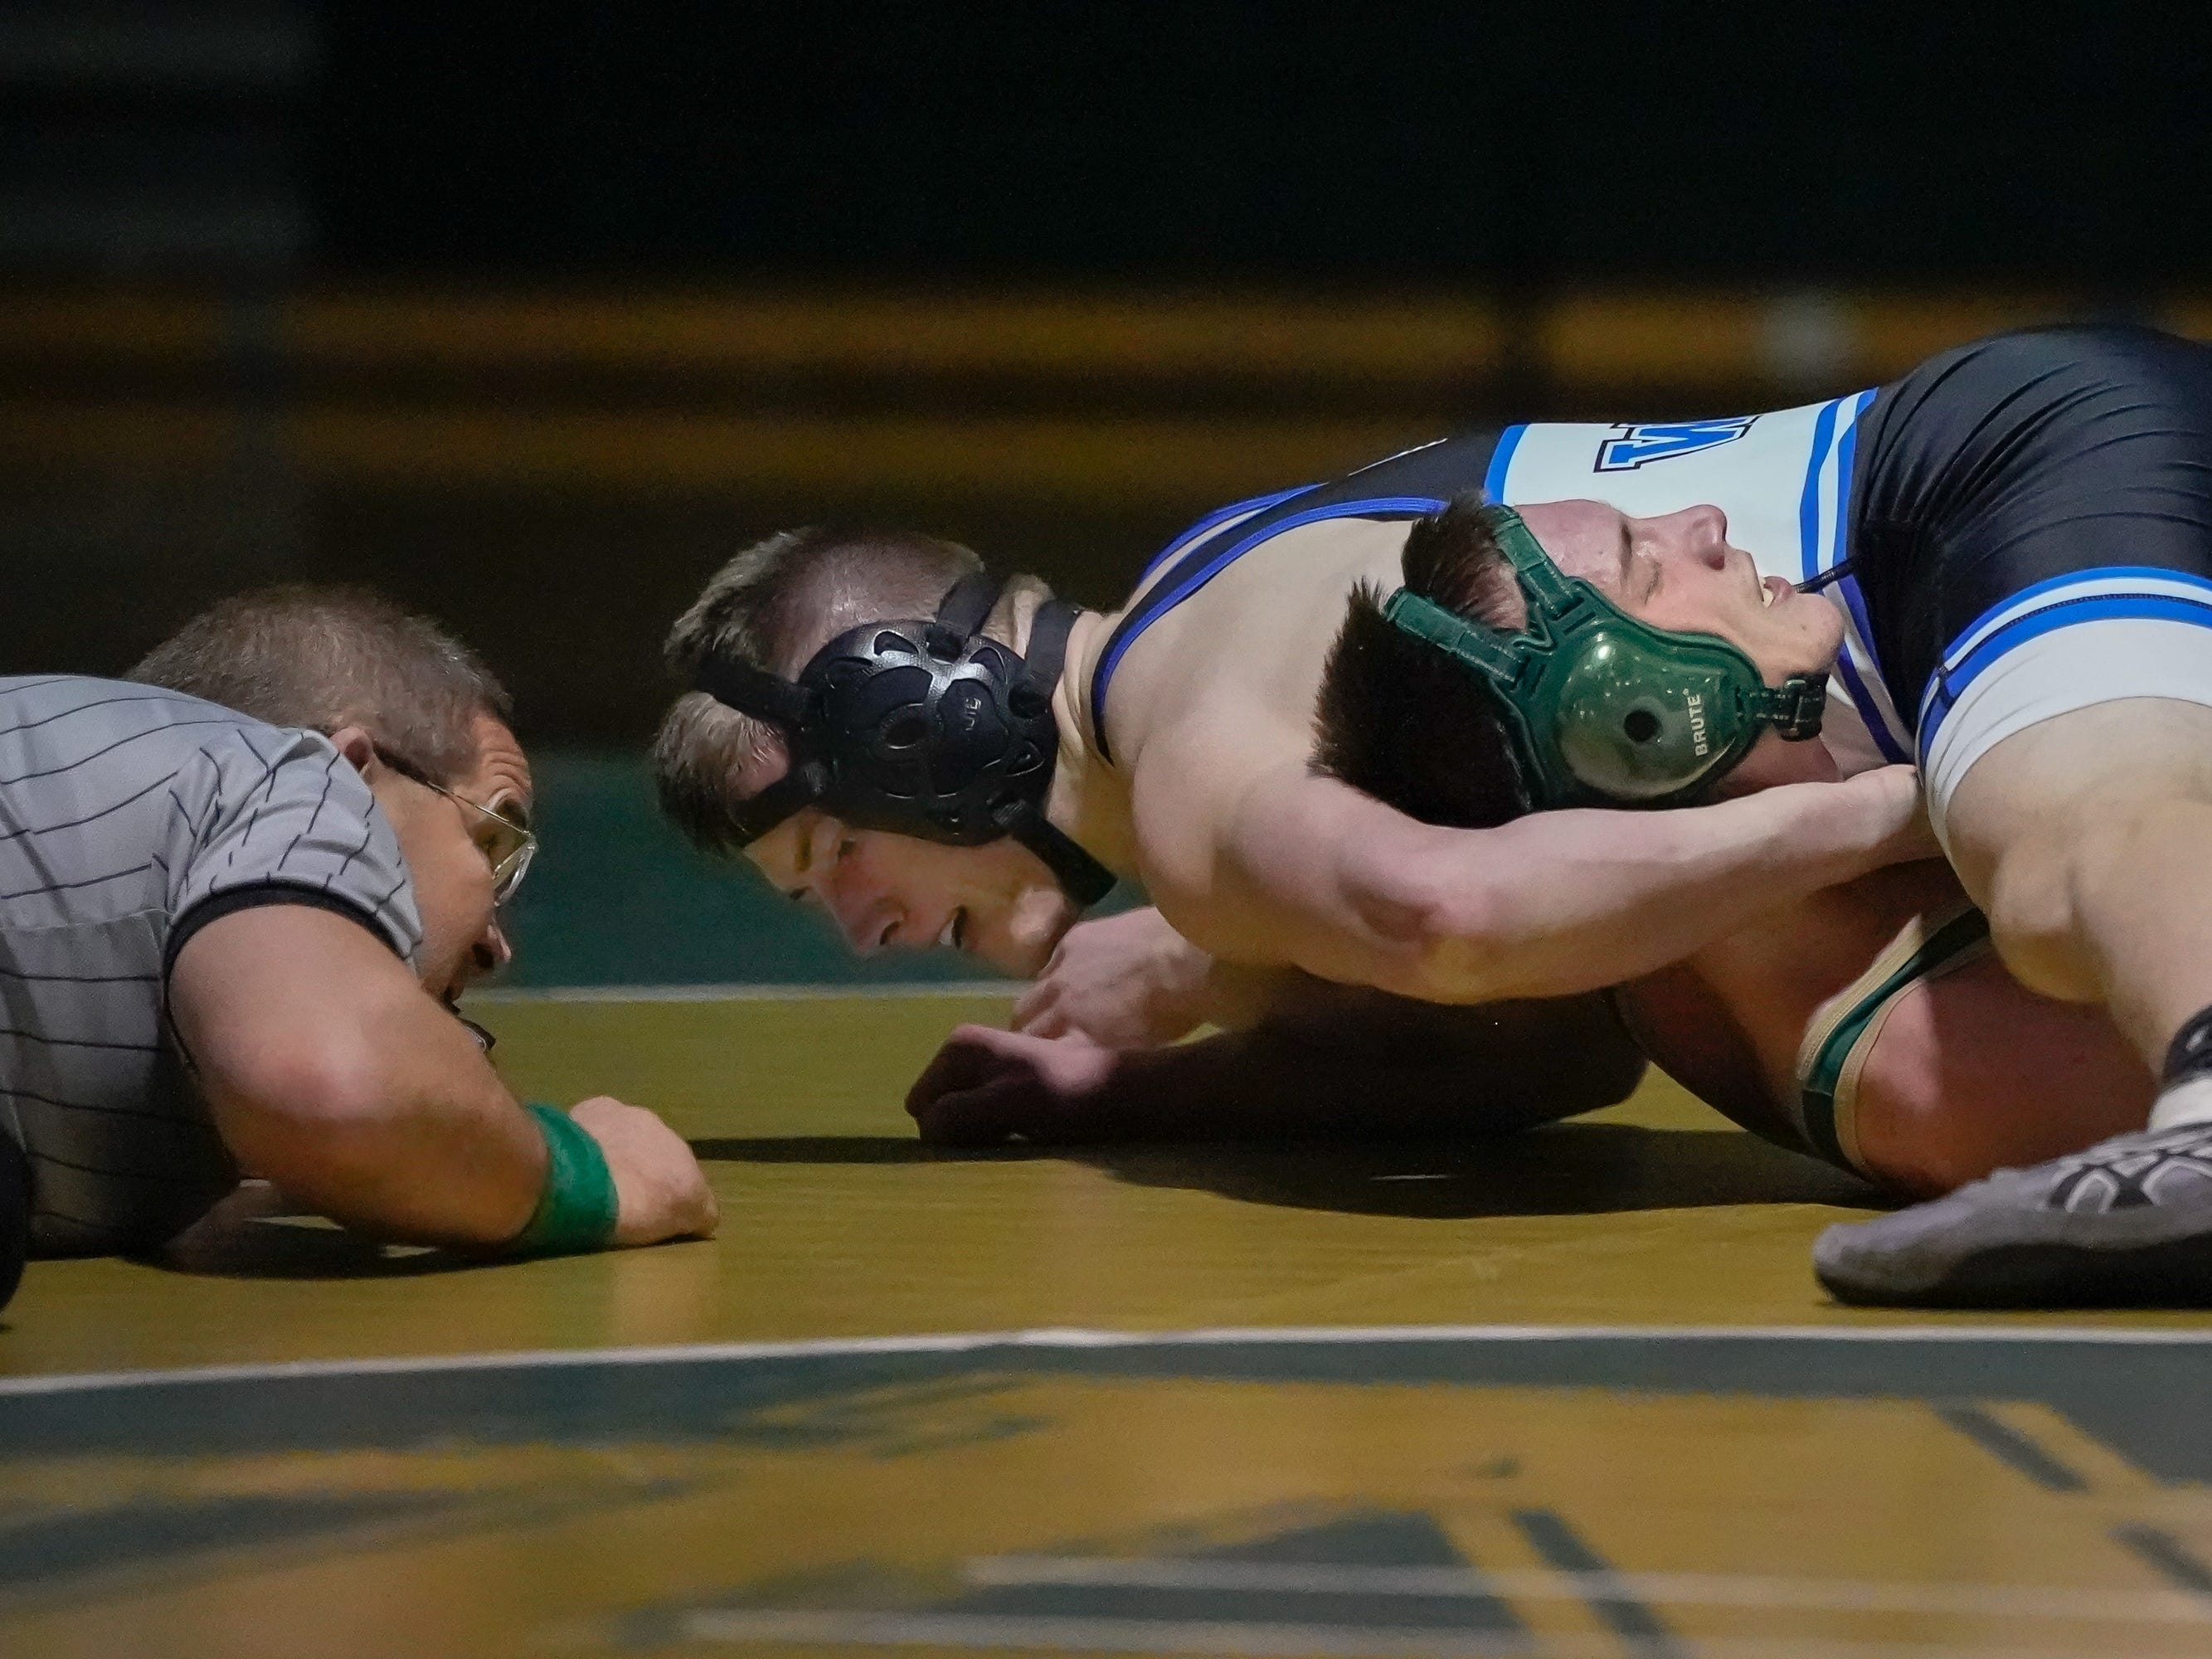 Jeremiah Chmielewski of Oshkosh North and Blake Framke of Oshkosh West wrestle in the 182-pound weight class. The Oshkosh North Spartans hosted the Oshkosh West Wildcats in a Fox Valley Association wrestling match Thursday evening, January 17, 2019.